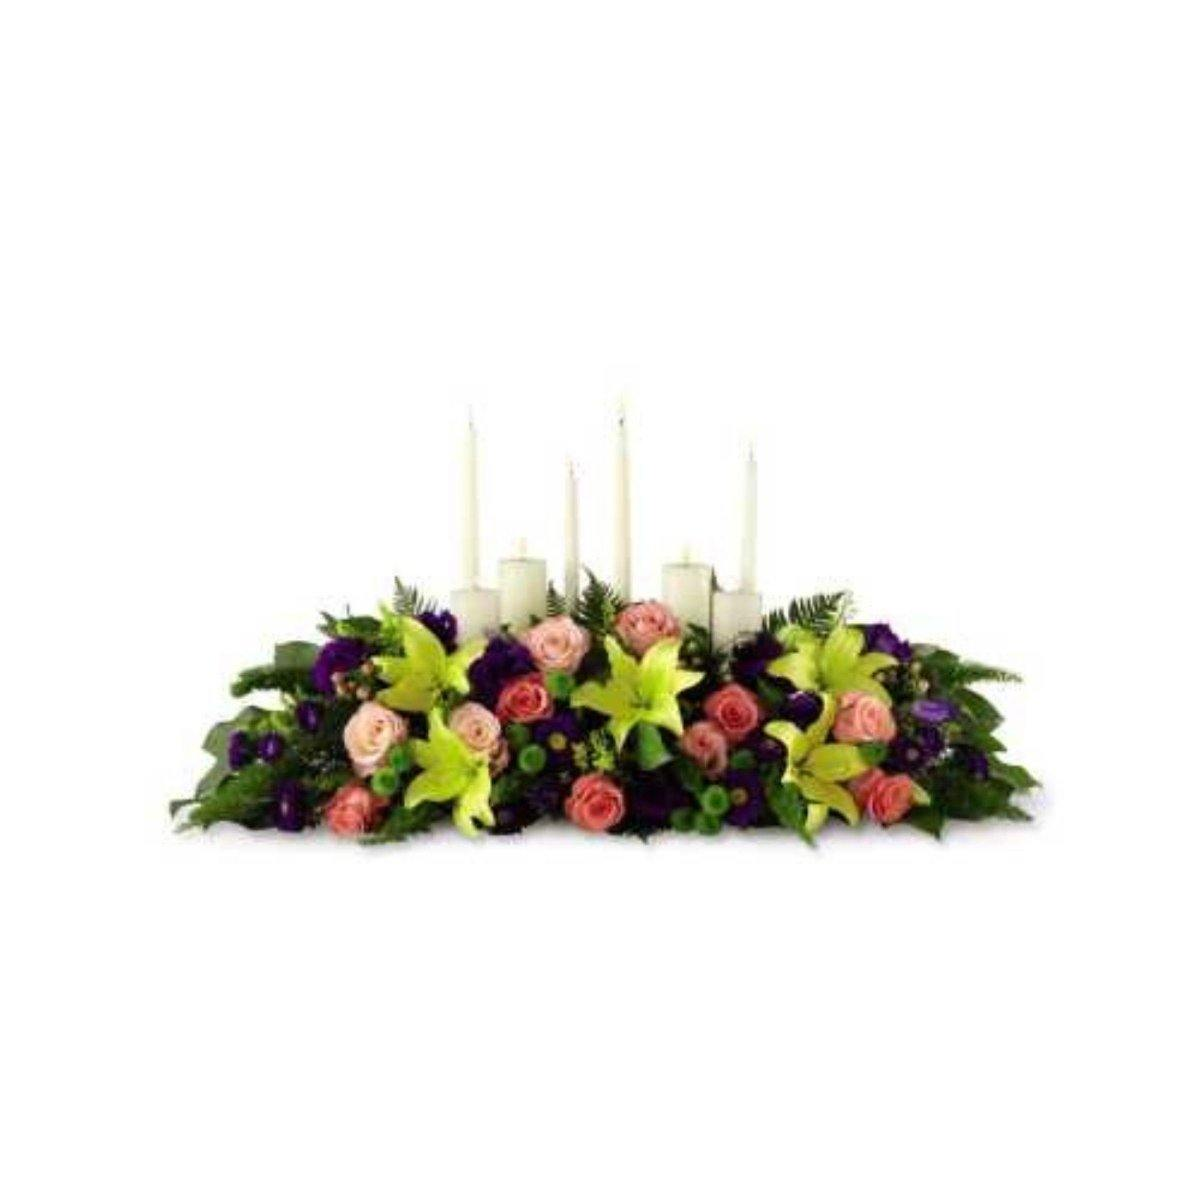 The FTD Forever Arrangement - Shalimar Flower Shop